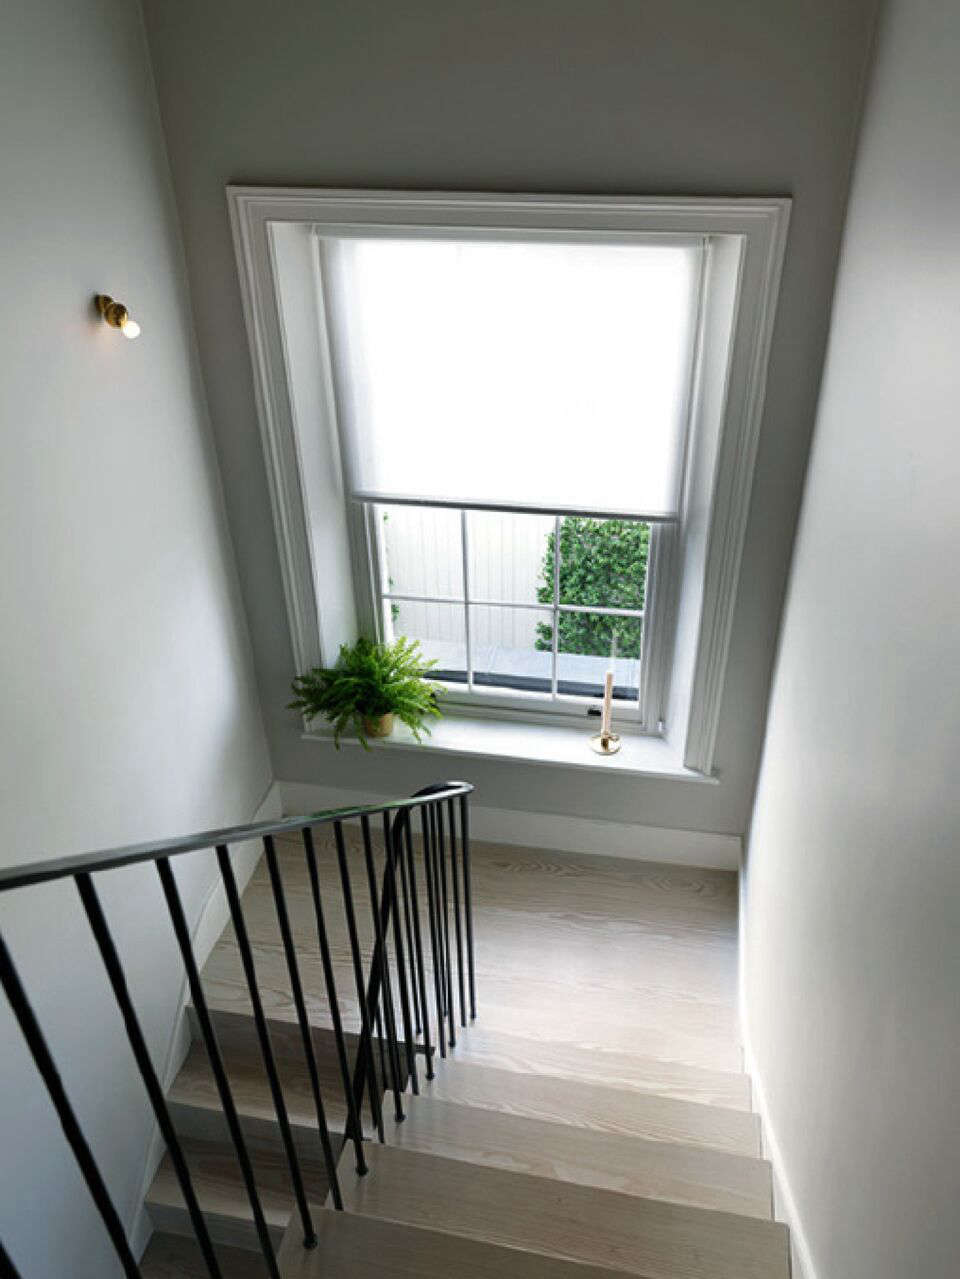 A Notting Hill Townhouse Tailored for Living by Charles Mellersh Villem Hammershoi inspired stairwell in a remodeled Notting Hill townhouse with interior design by Charles Mellersh   Remodelista